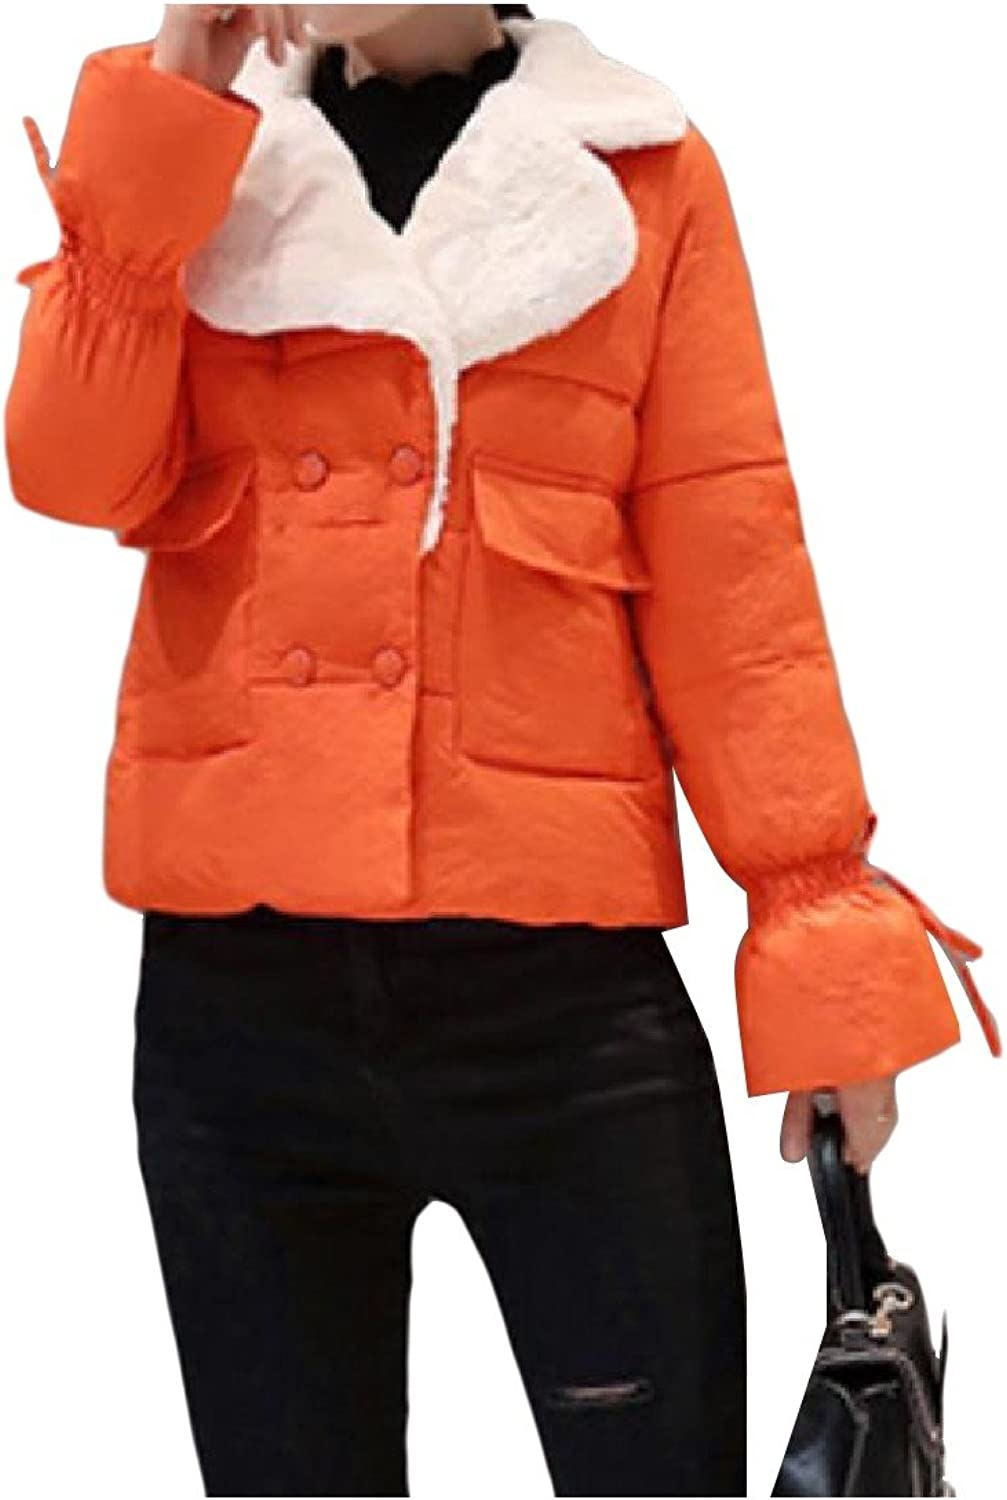 TootlessWomen Loose Fit FoldCollar Solidcolord Wild Parka Jacket